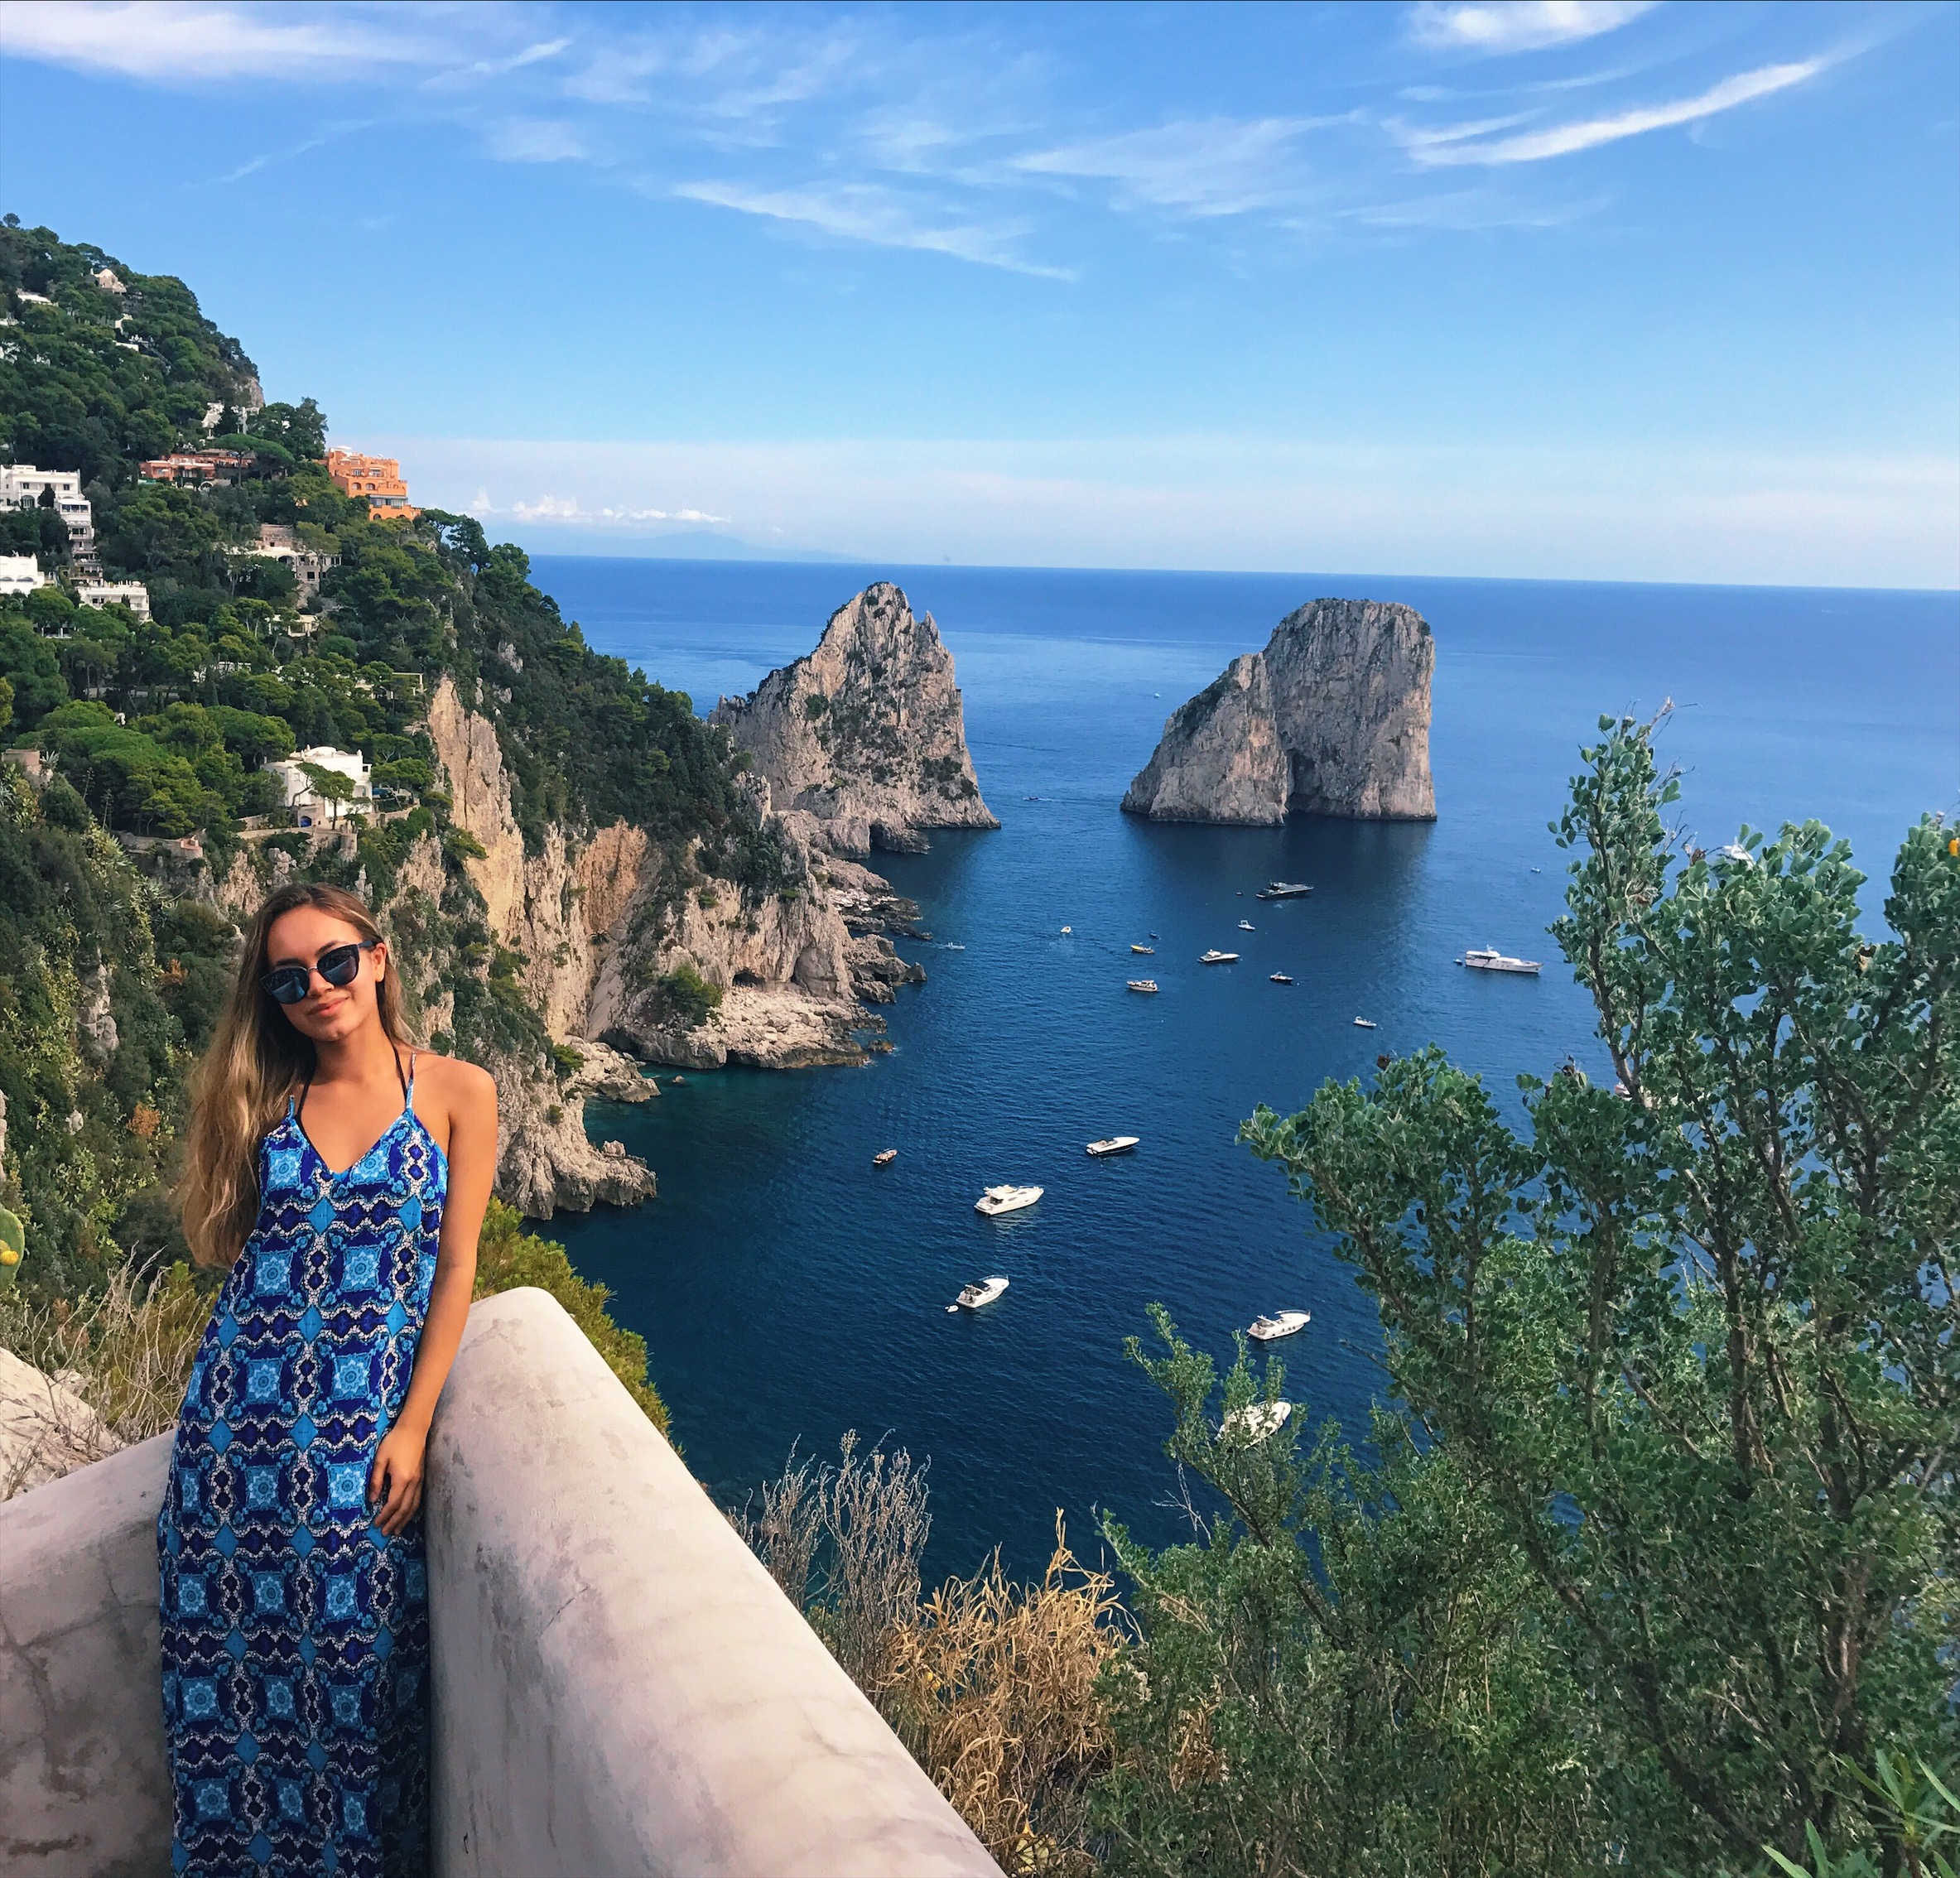 The Island of Capri – Italy